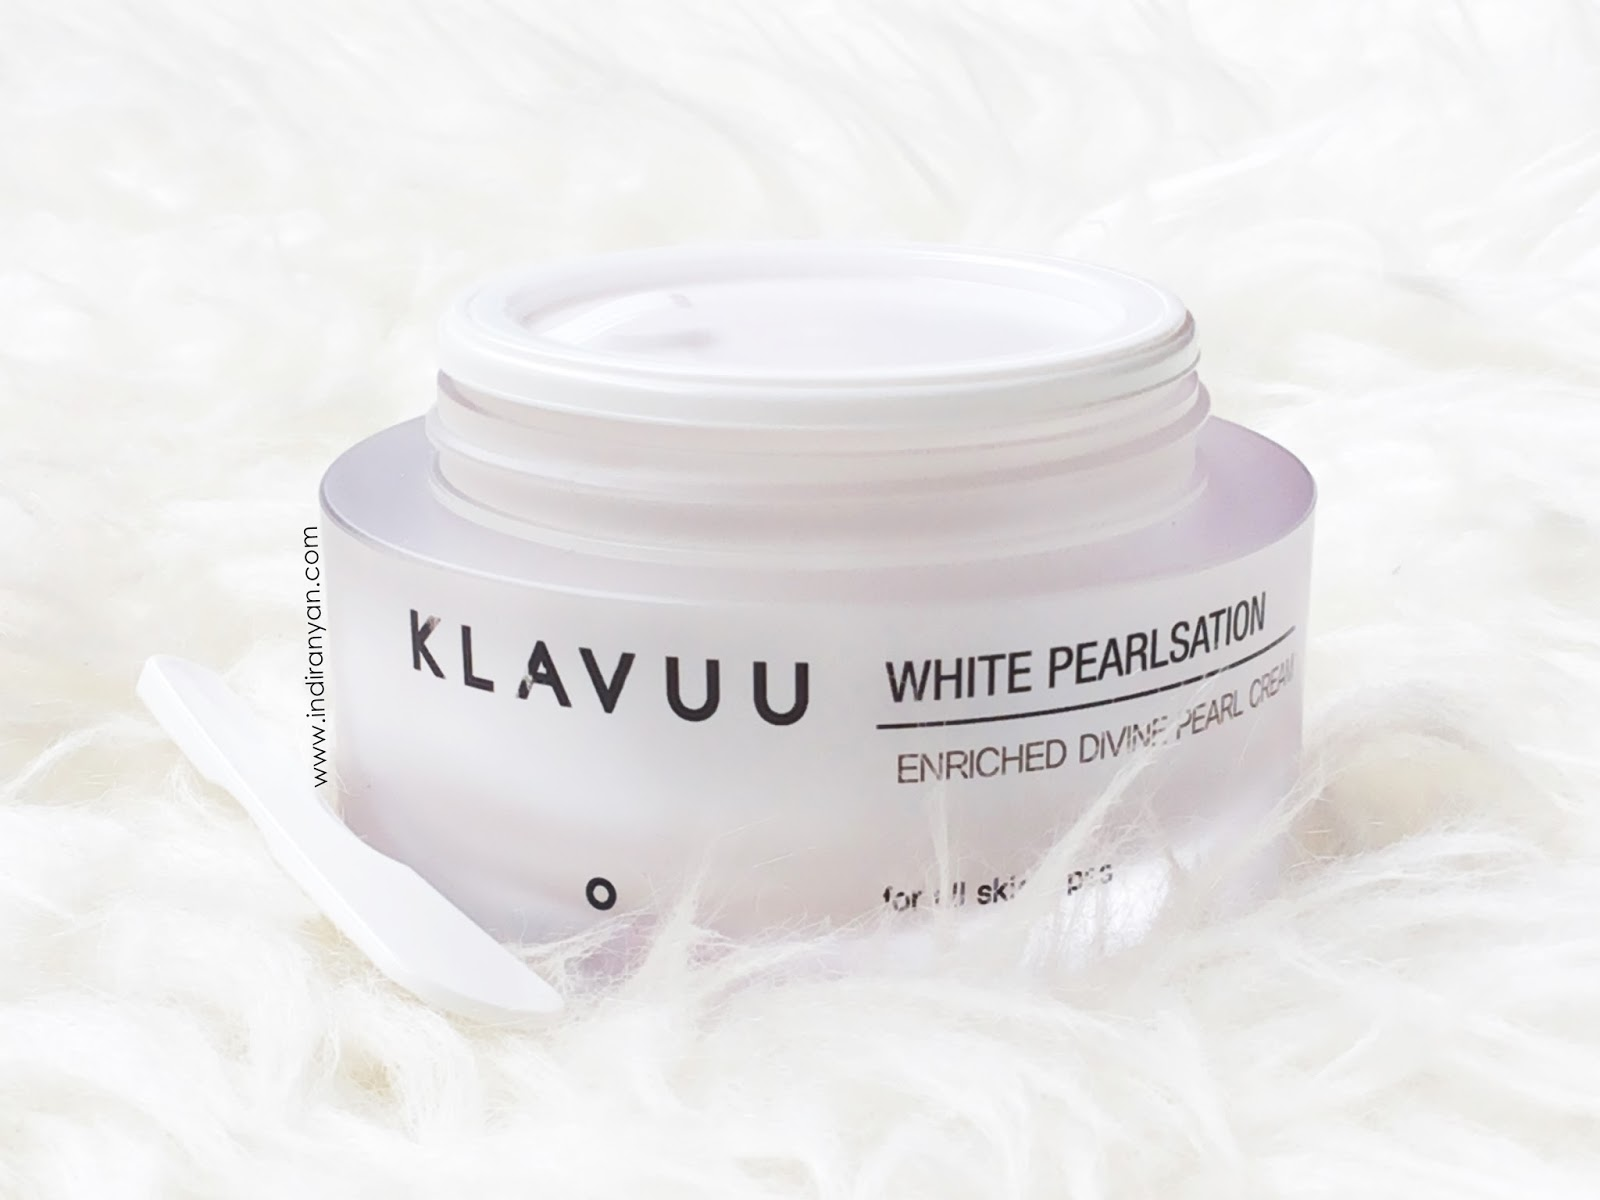 klavuu-white-pearlsation-enriched-divine-pearl-cream-packaging